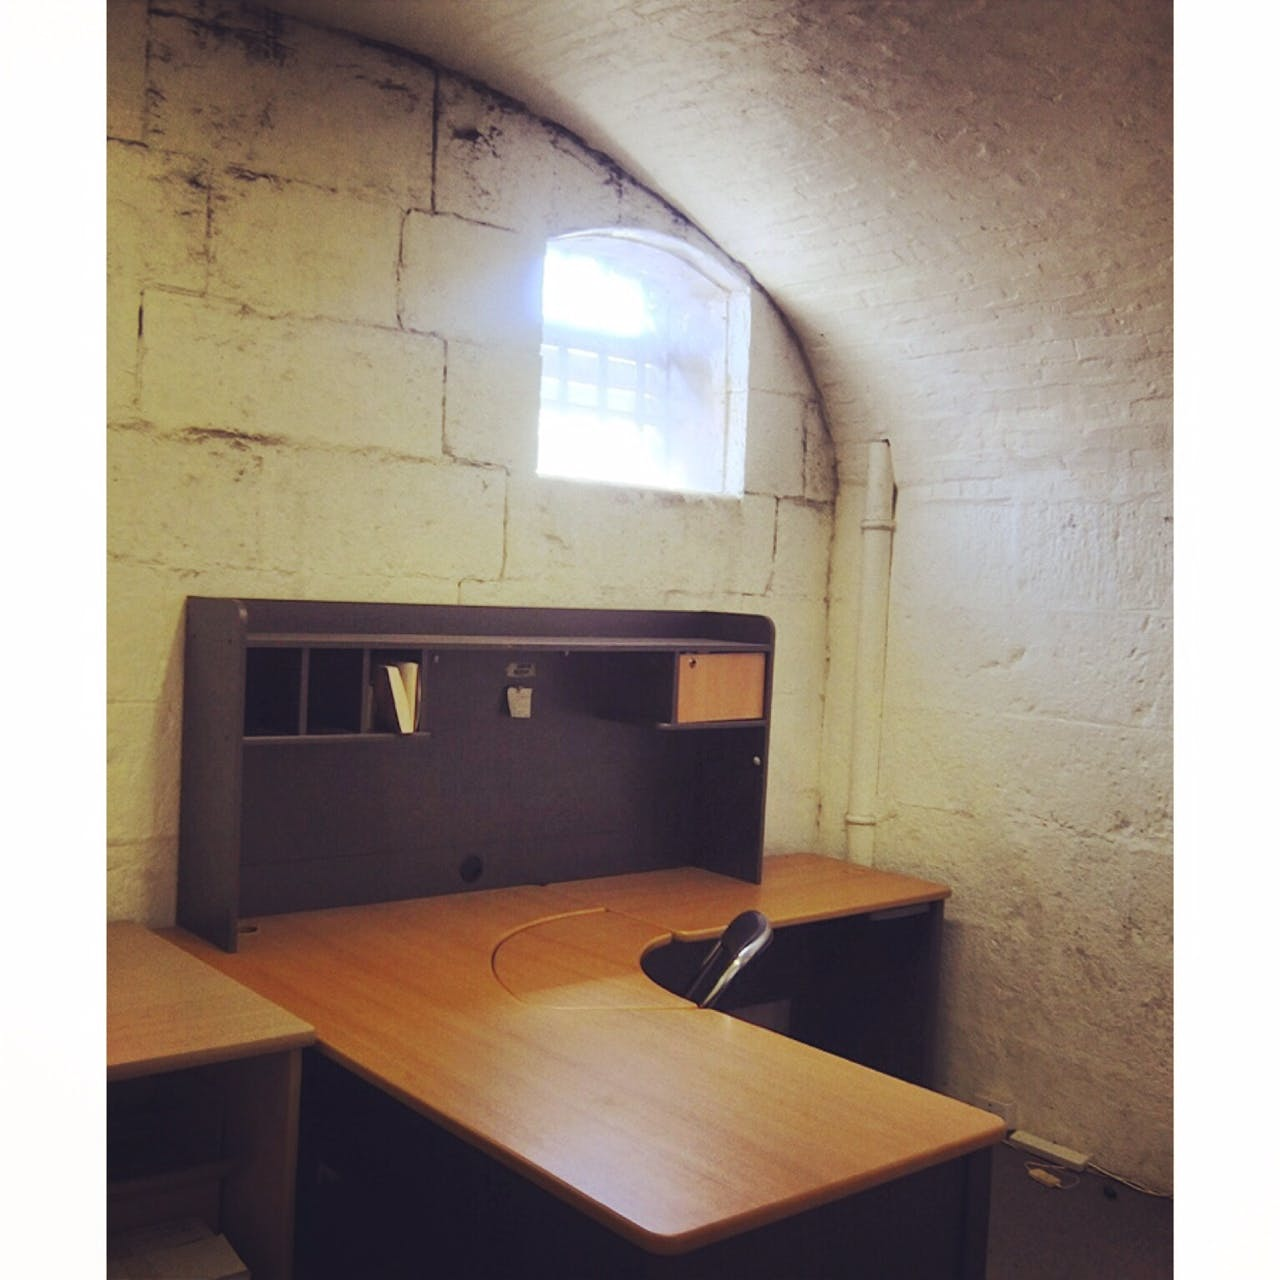 Cells for Writers, creative studio at Old Melbourne Gaol, image 1